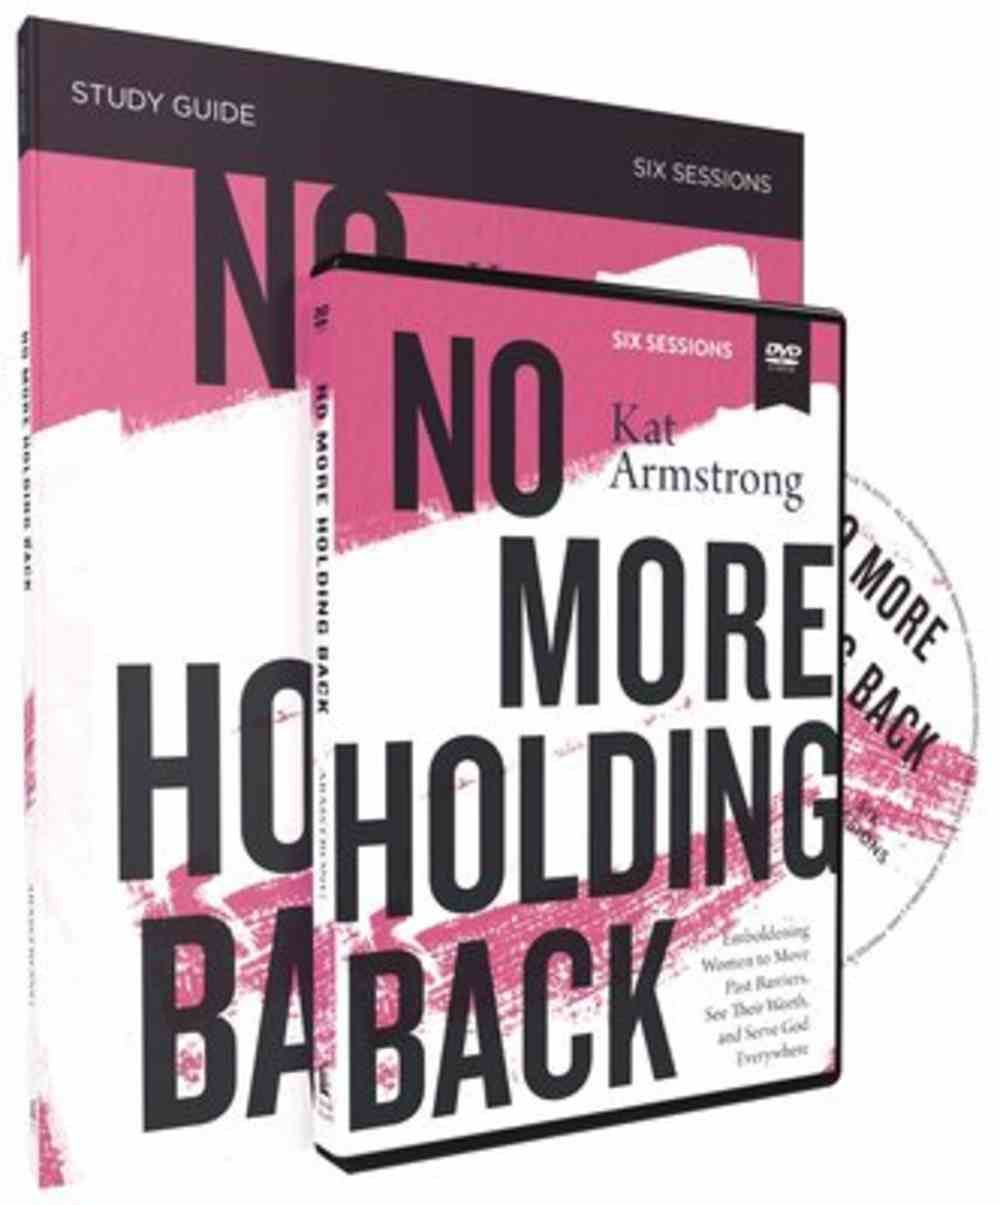 No More Holding Back: Empowering Women to Move Past Barriers, See Their Worth, and Serve God Everywhere (Study Guide With Dvd) Paperback